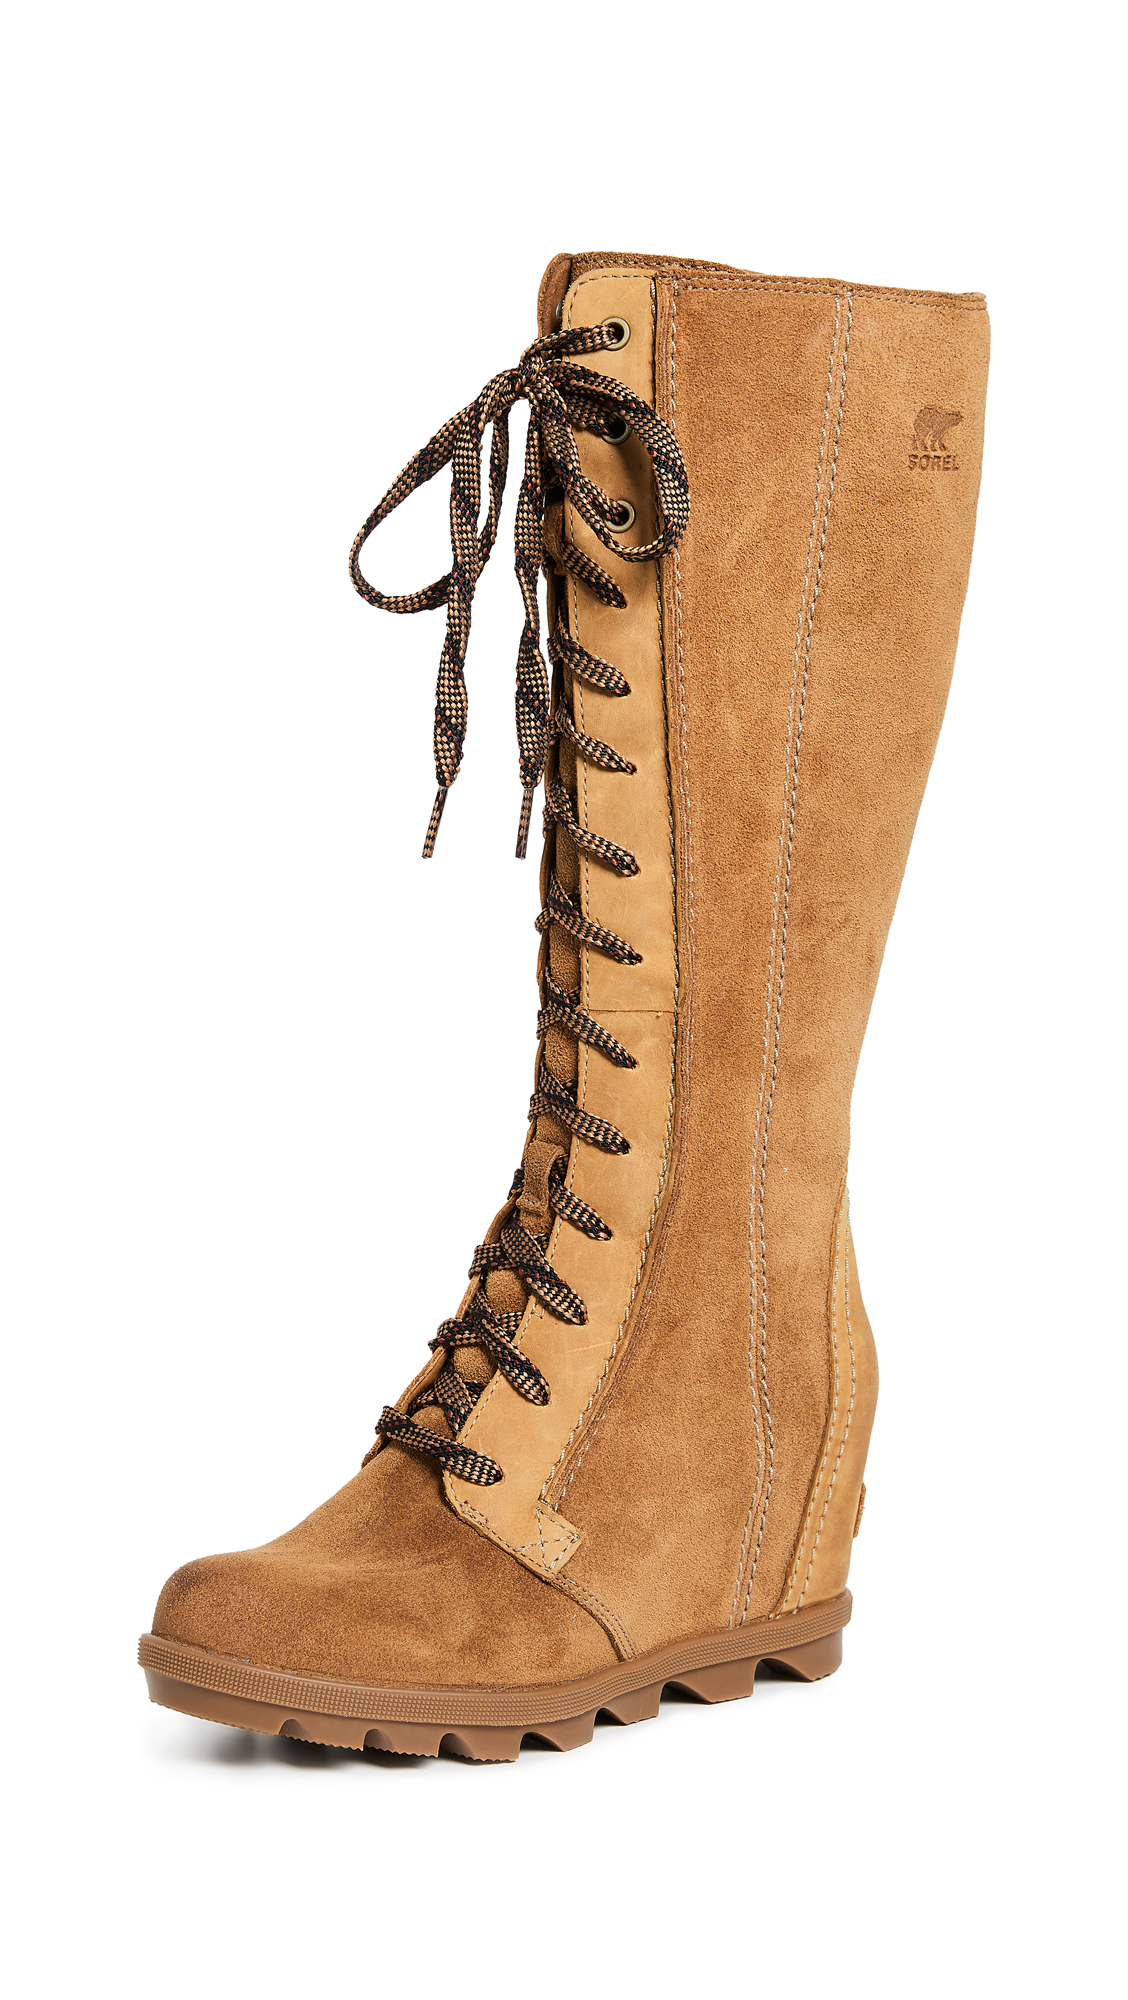 Sorel Joan Of Arctic Wedge II Tall Boots - Camel Brown